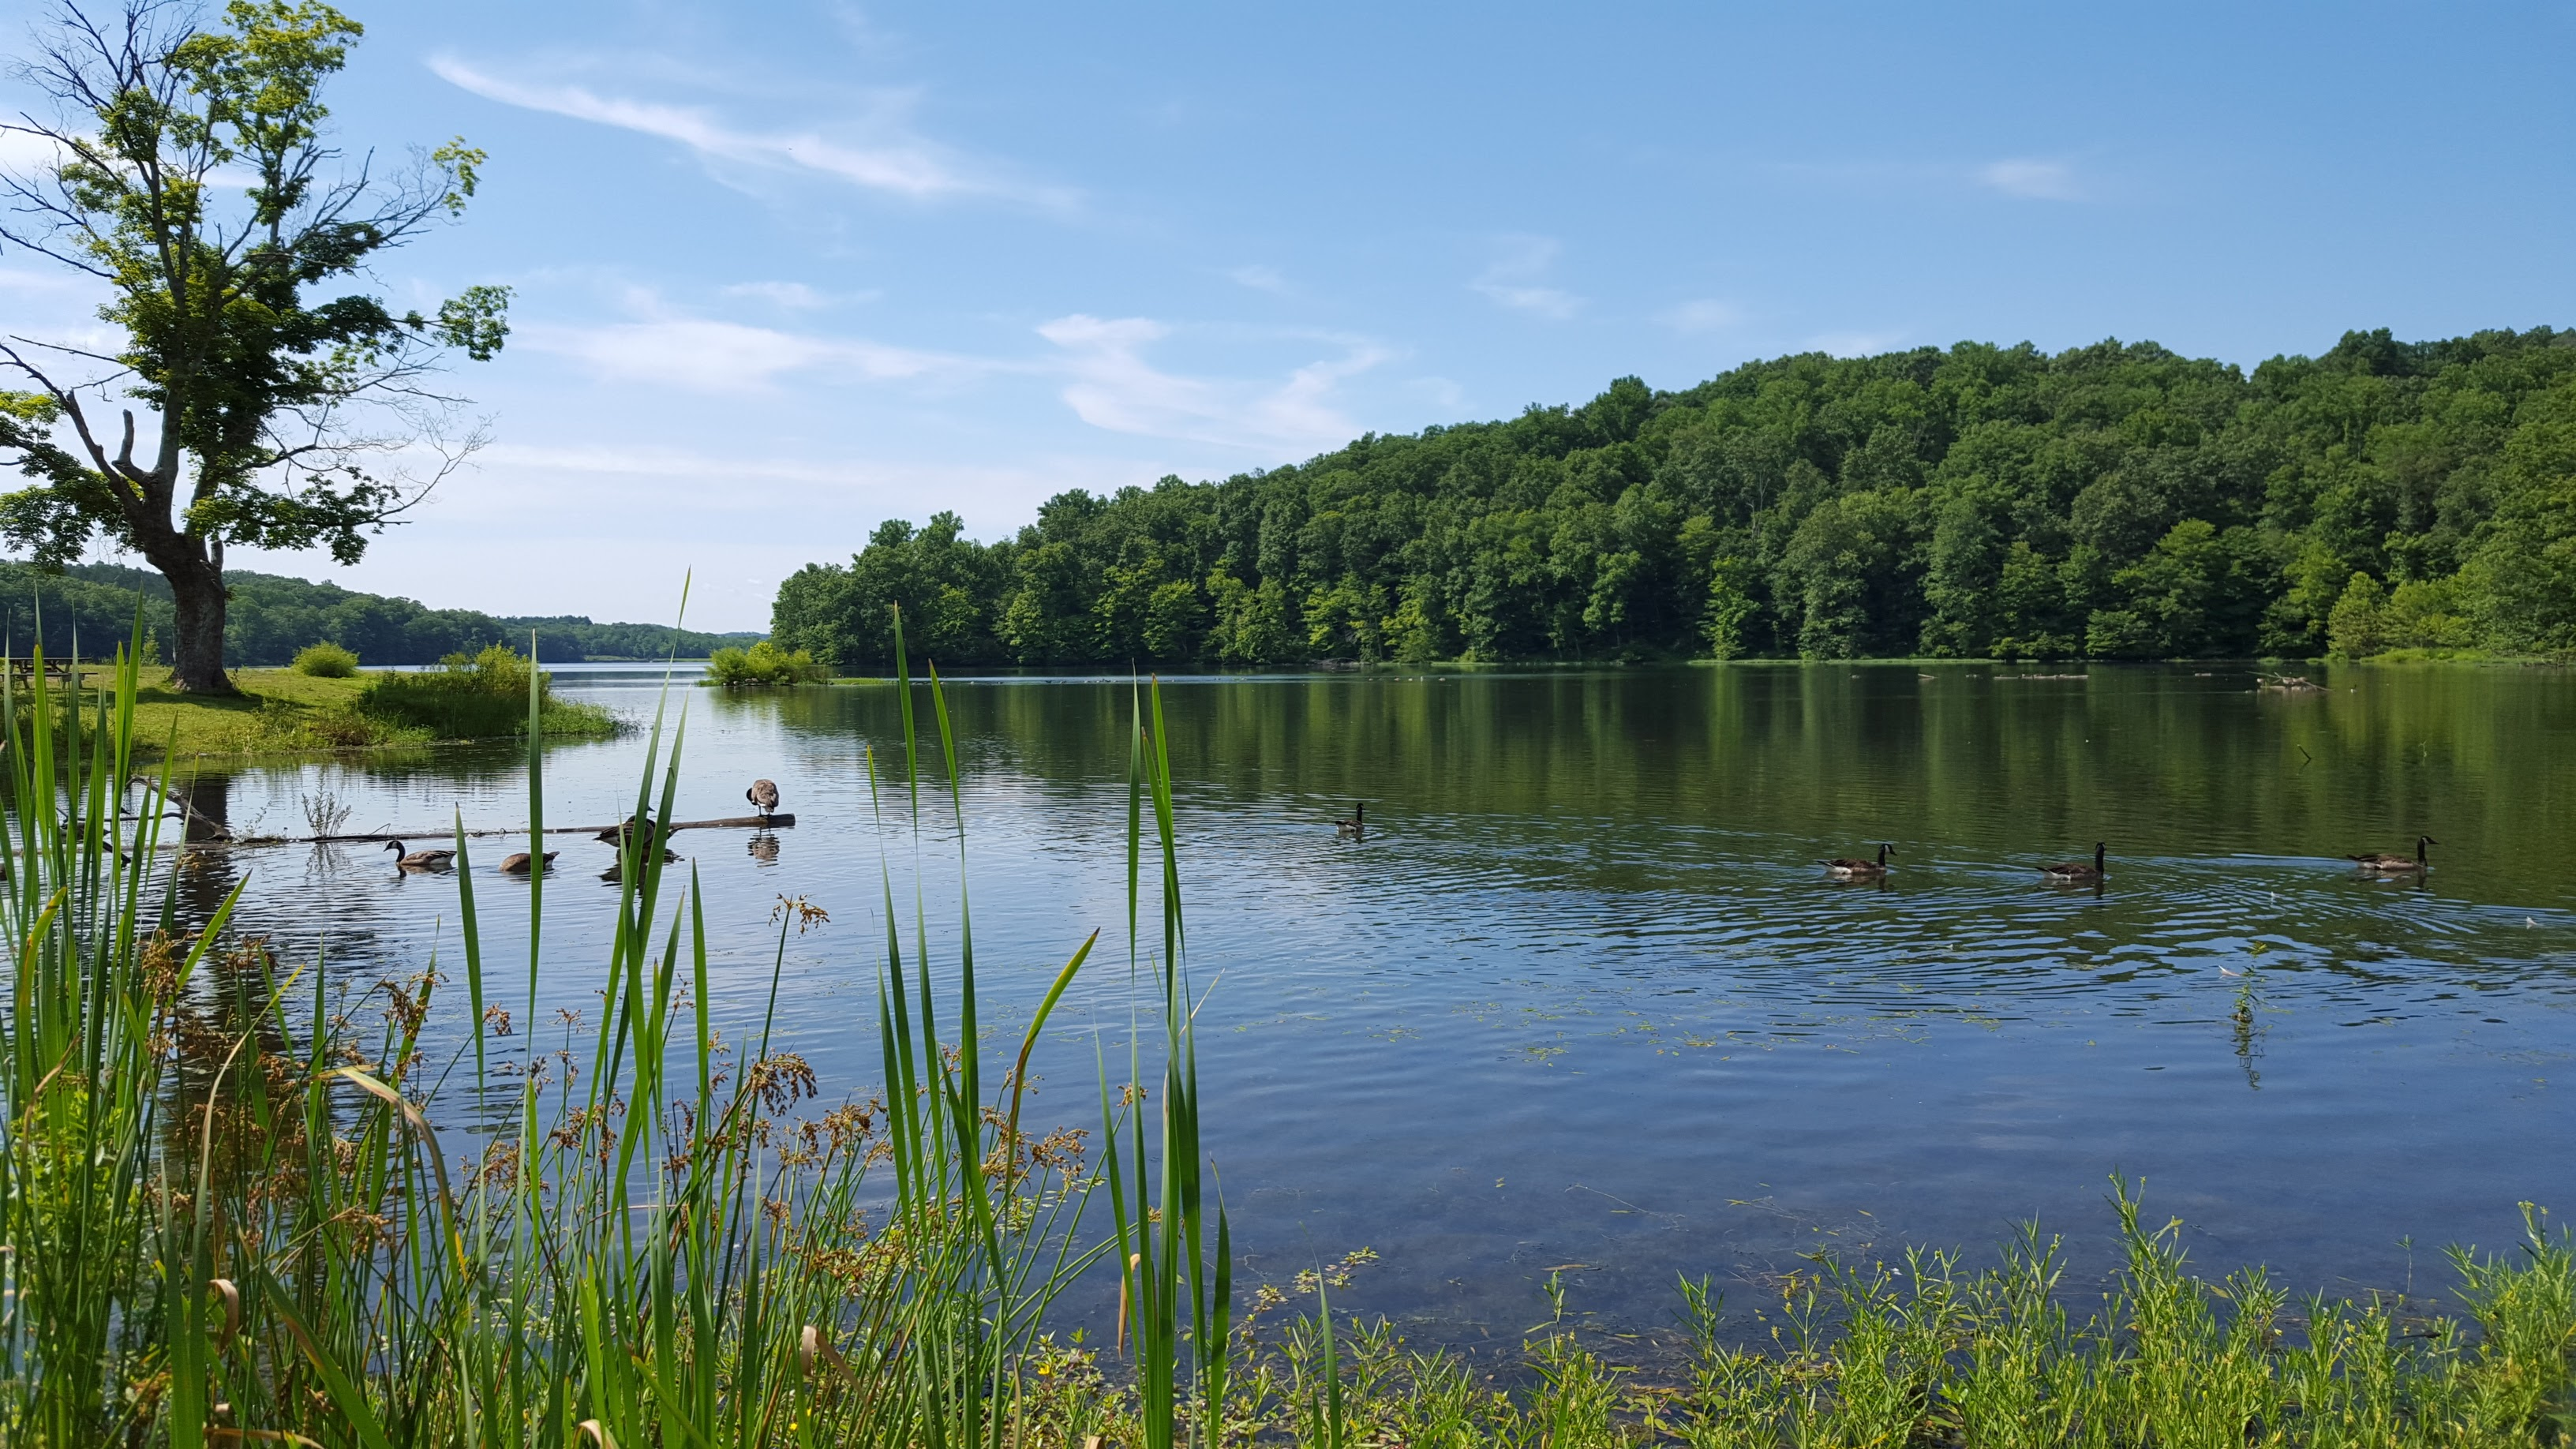 Yellowwood Lake, Yellowwood State Forest, Monroe County, Indiana. June 15, 2016. Photographed by Vanessa M. Snyder.